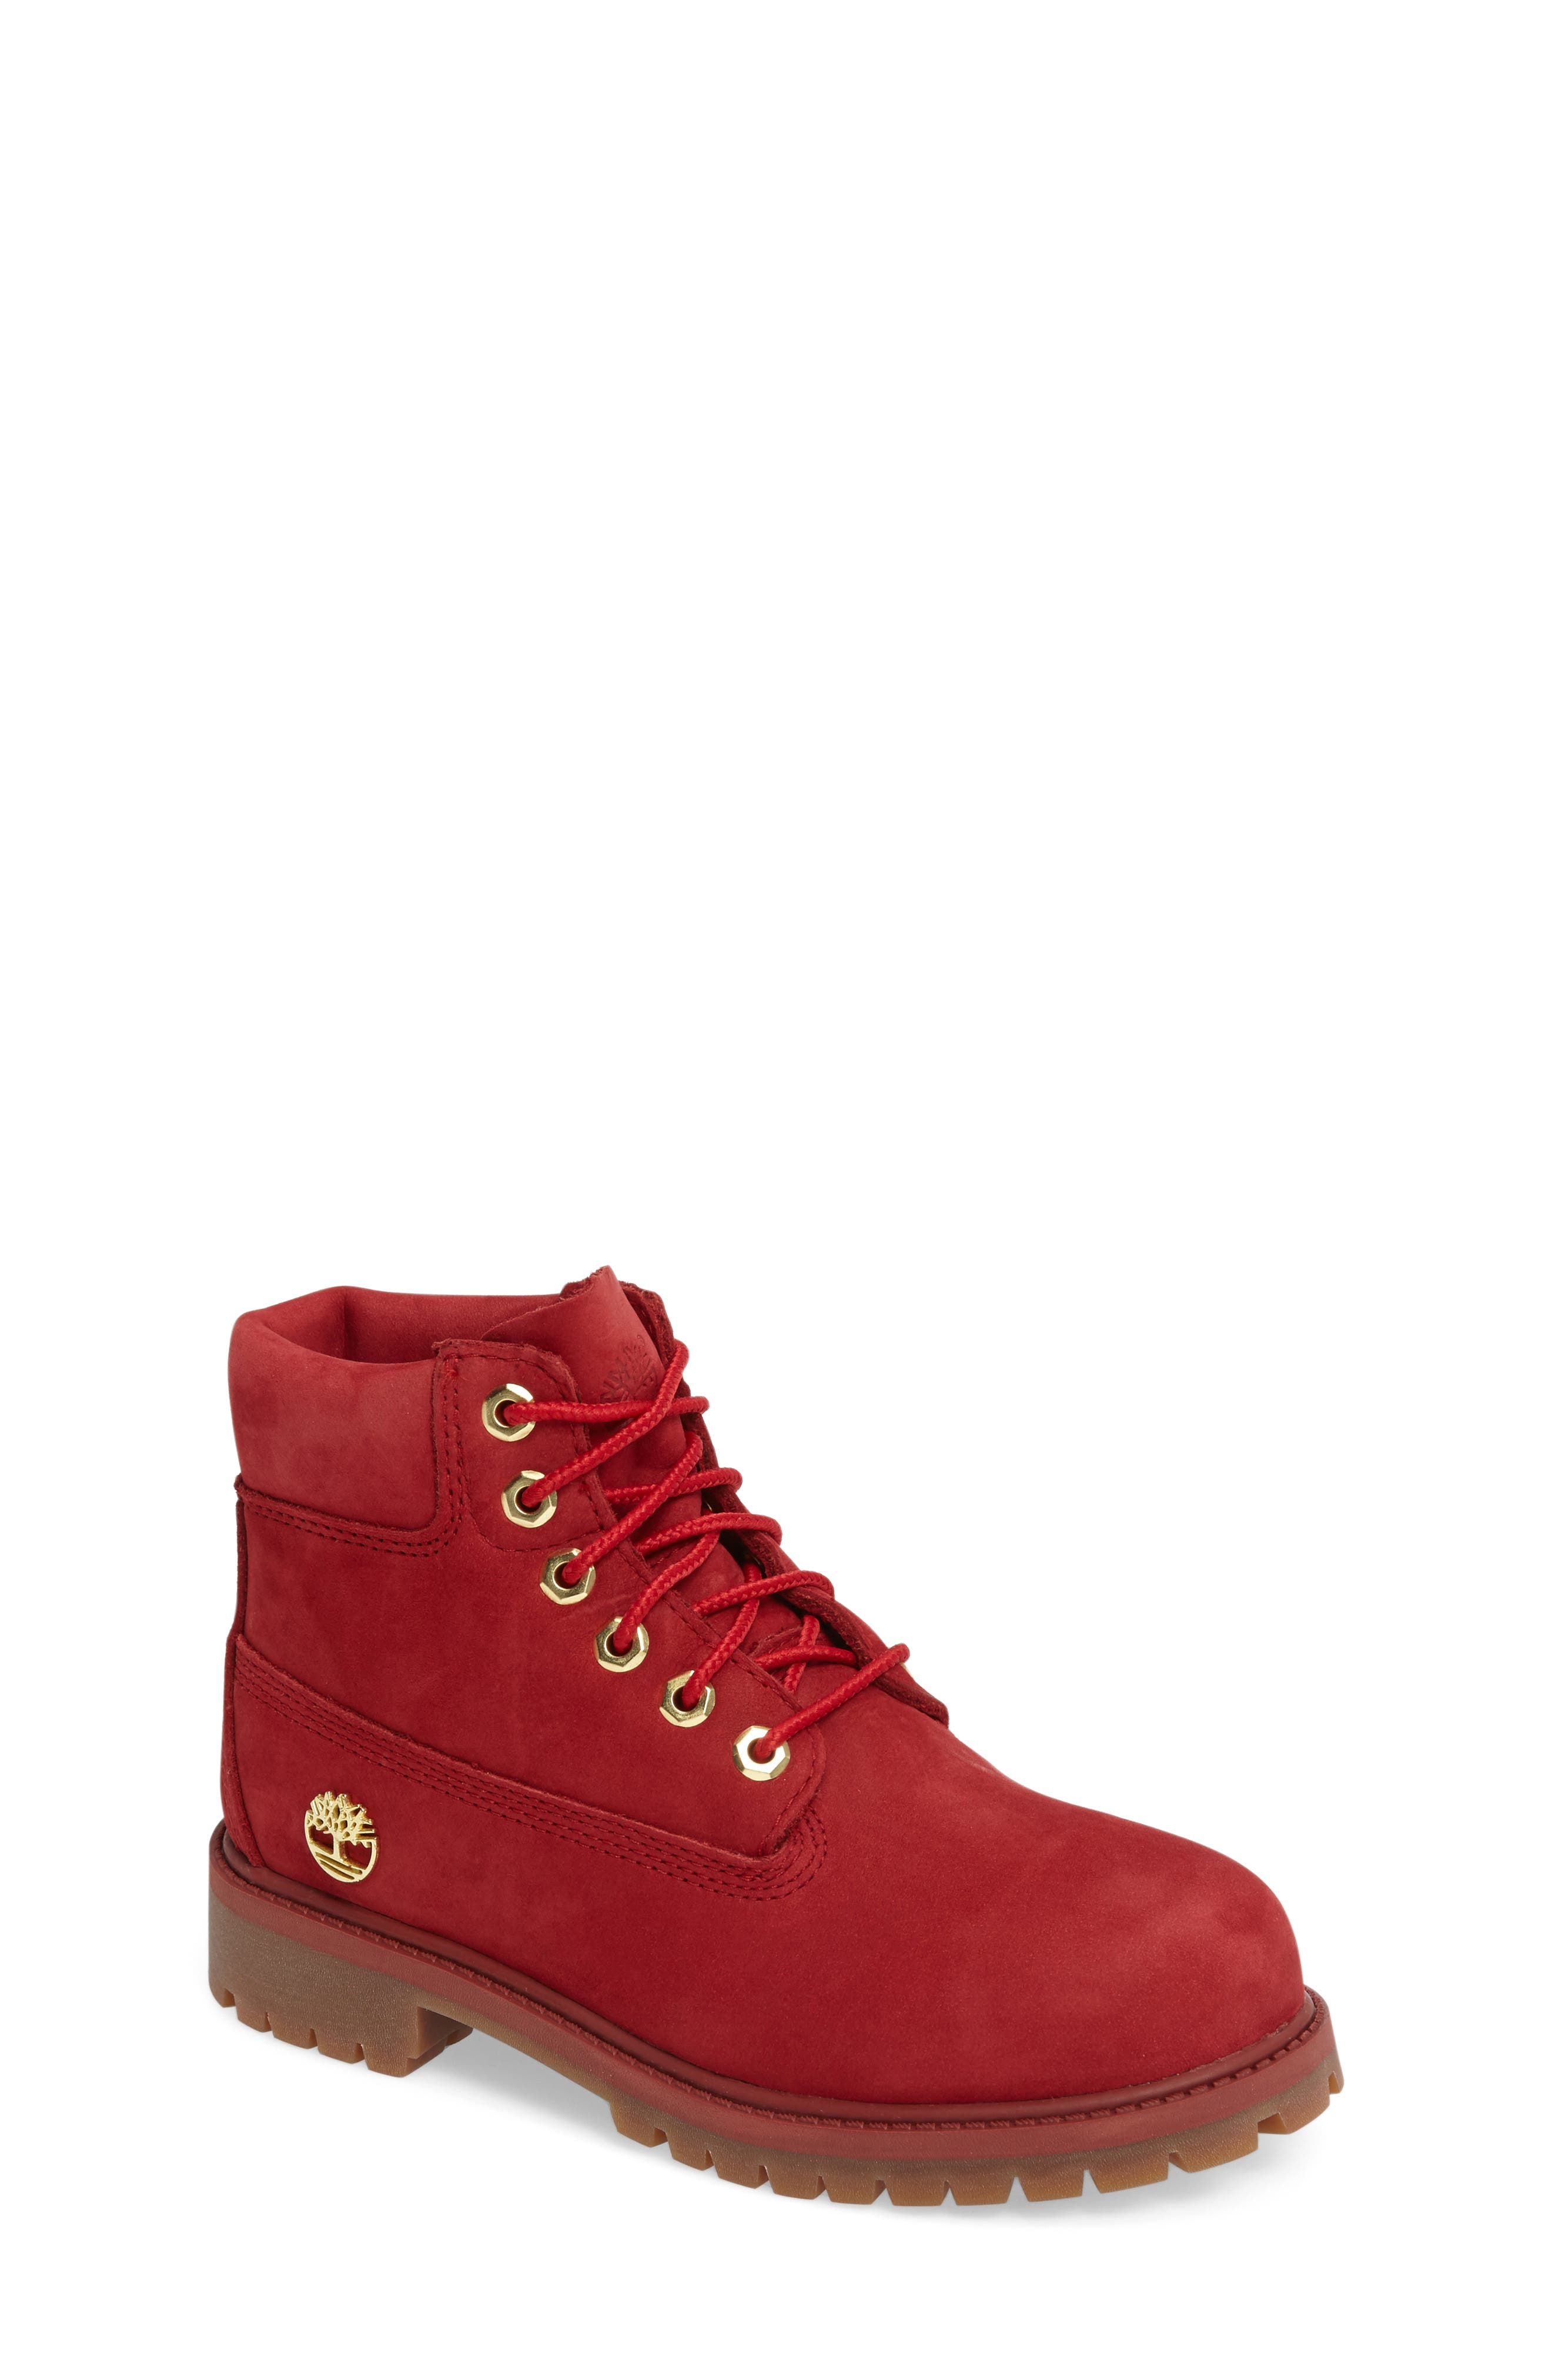 40th Anniversary Ruby Red Waterproof Boot,                         Main,                         color, 601